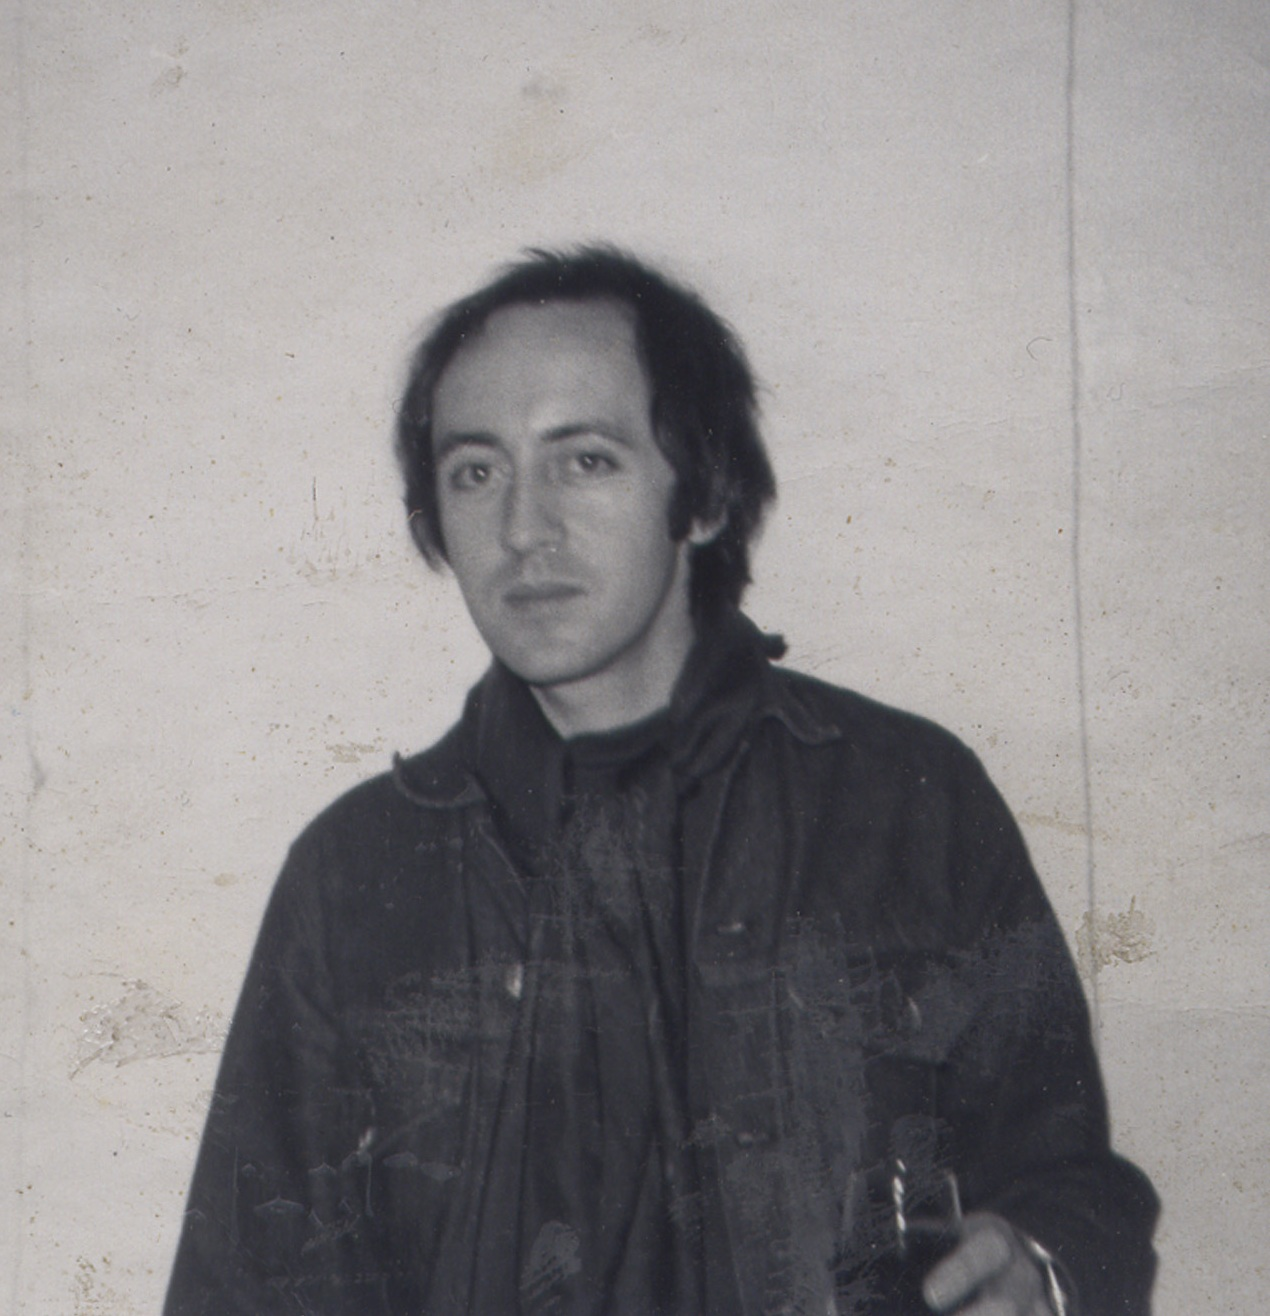 Billy Collins, c. 1970.